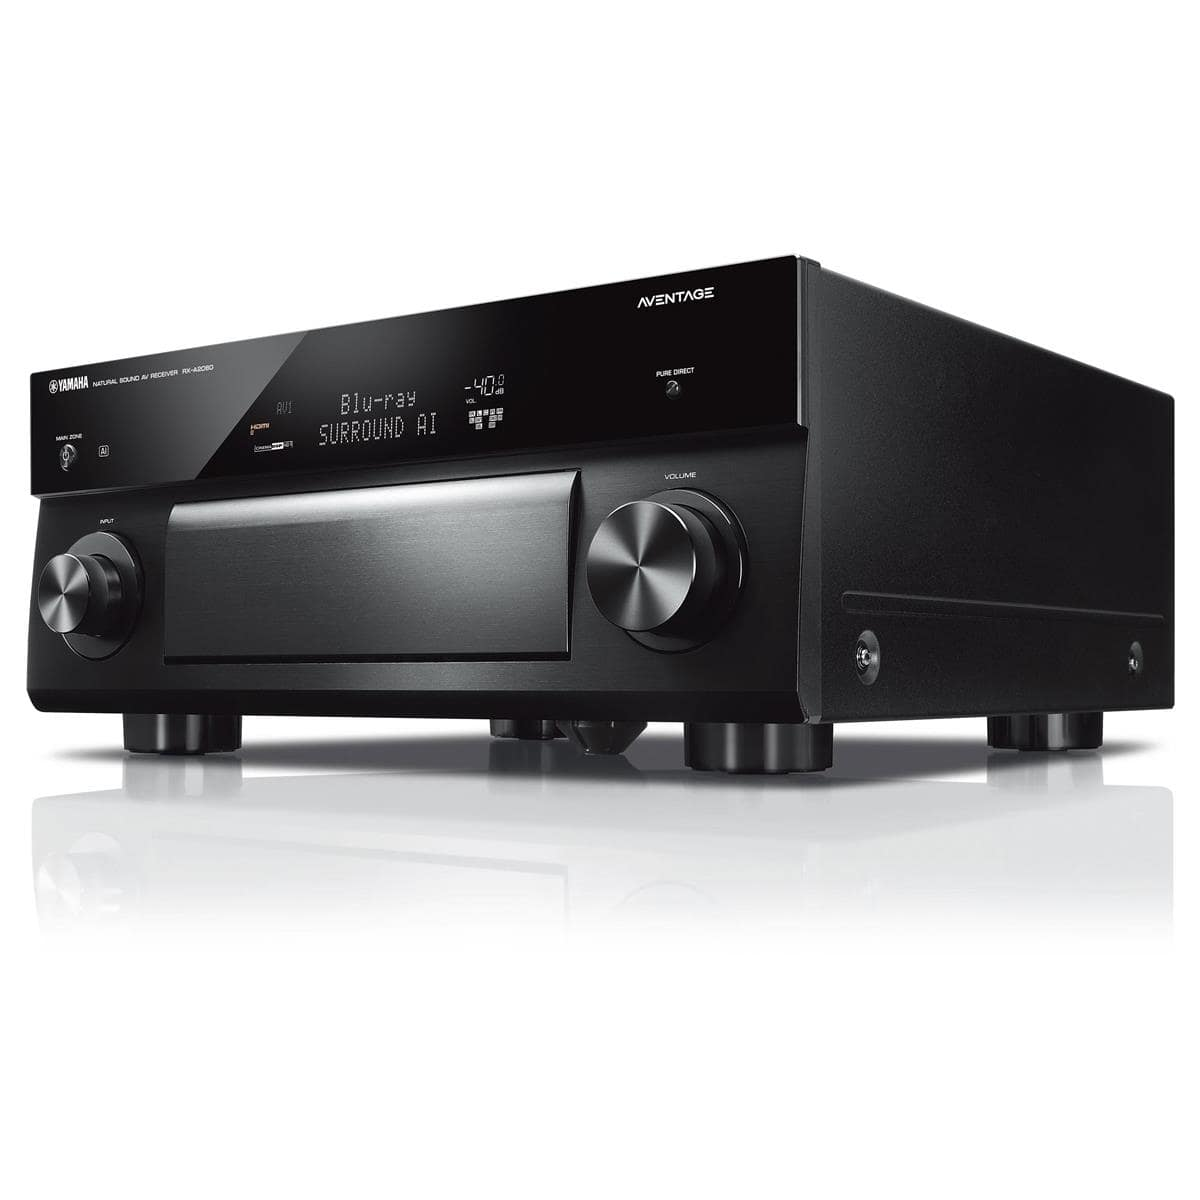 Yamaha AVENTAGE RX-A3080 9.2-Channel Network A/V Receiver $1250 + Free Shipping